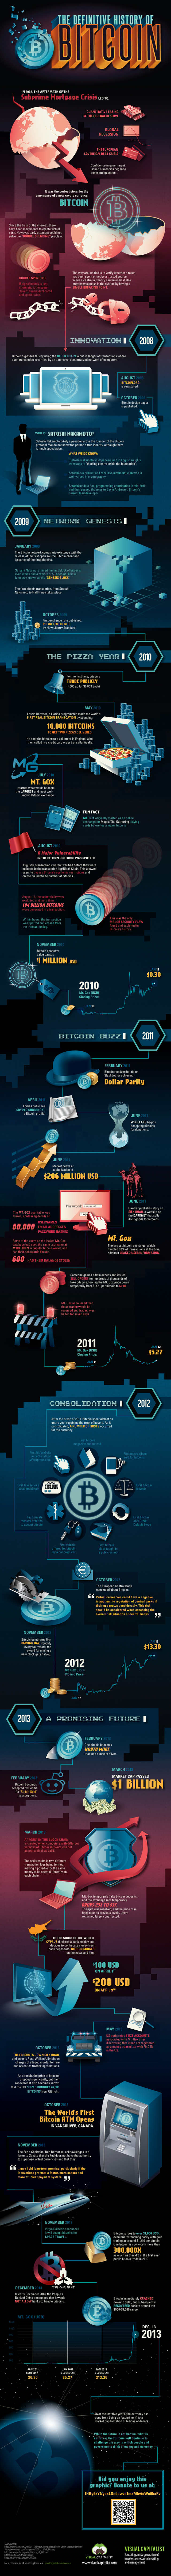 The History of Bitcoin- infographic (1)